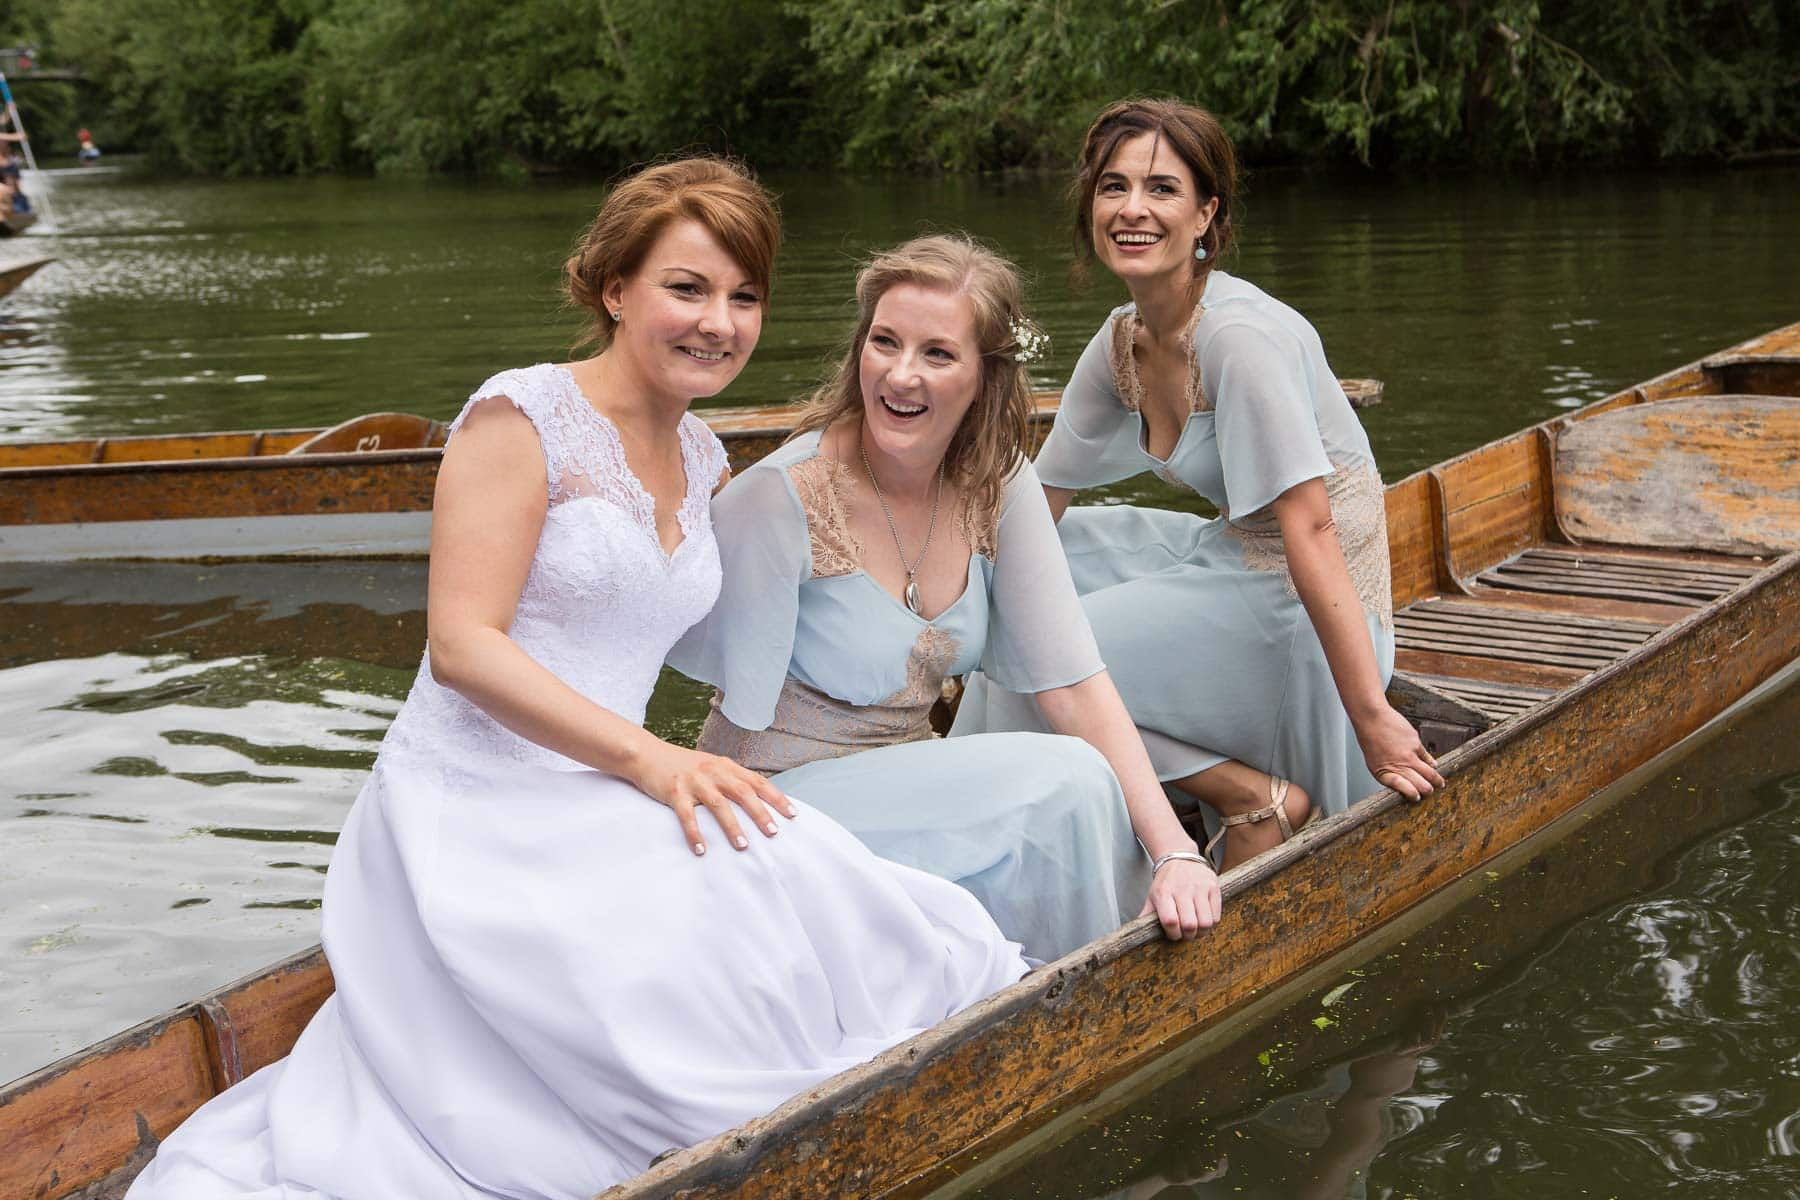 Bride and bridesmaids together in punt on the River Cherwell